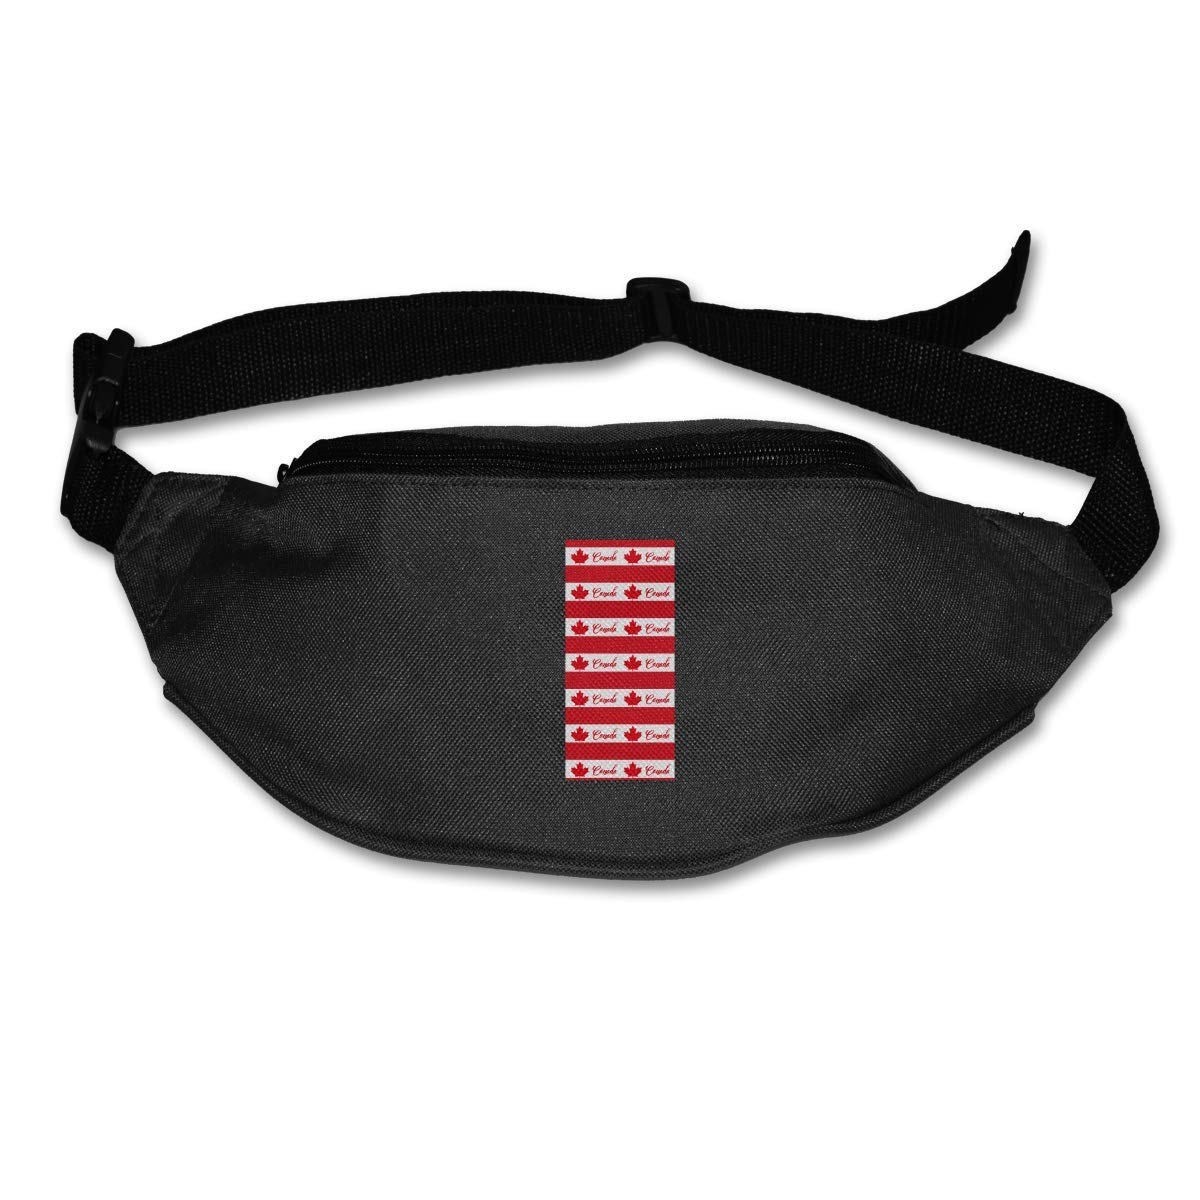 Novelty Colorful Cute Canada Canvas Running Waist Pack Bag Travel Sports